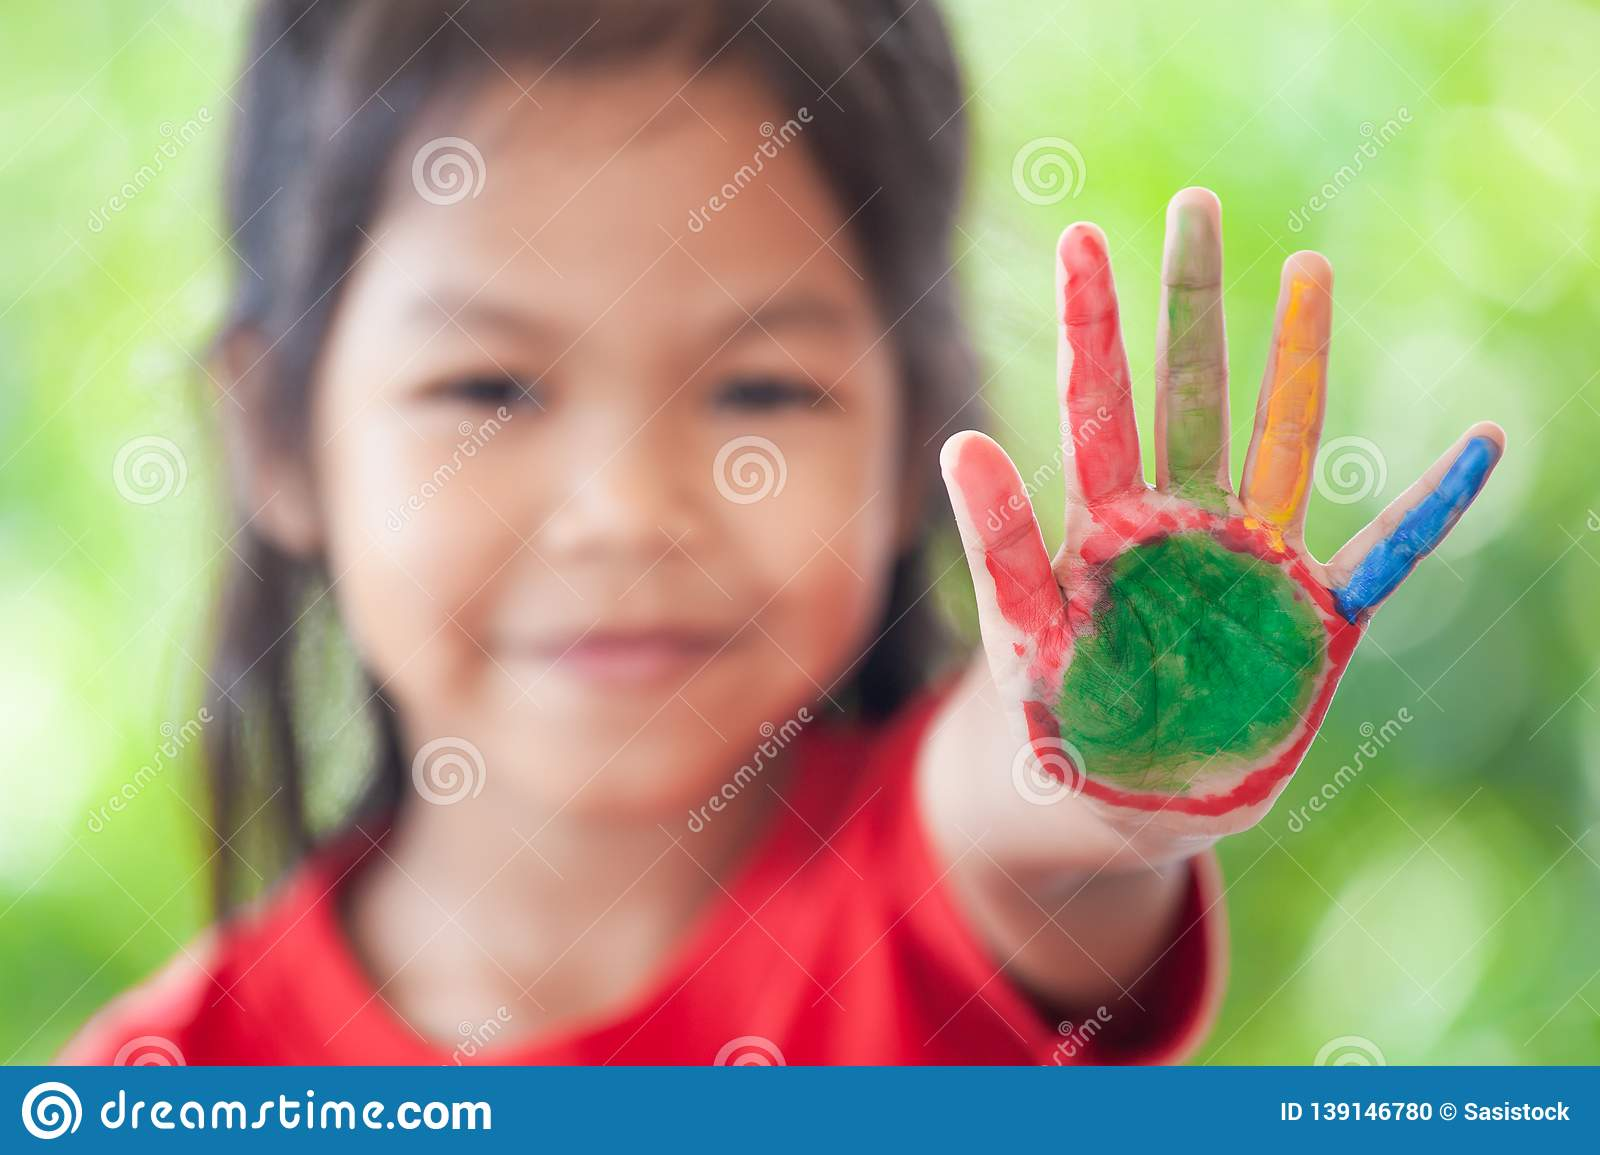 Asian little child girl with painted hands showing fingers number five